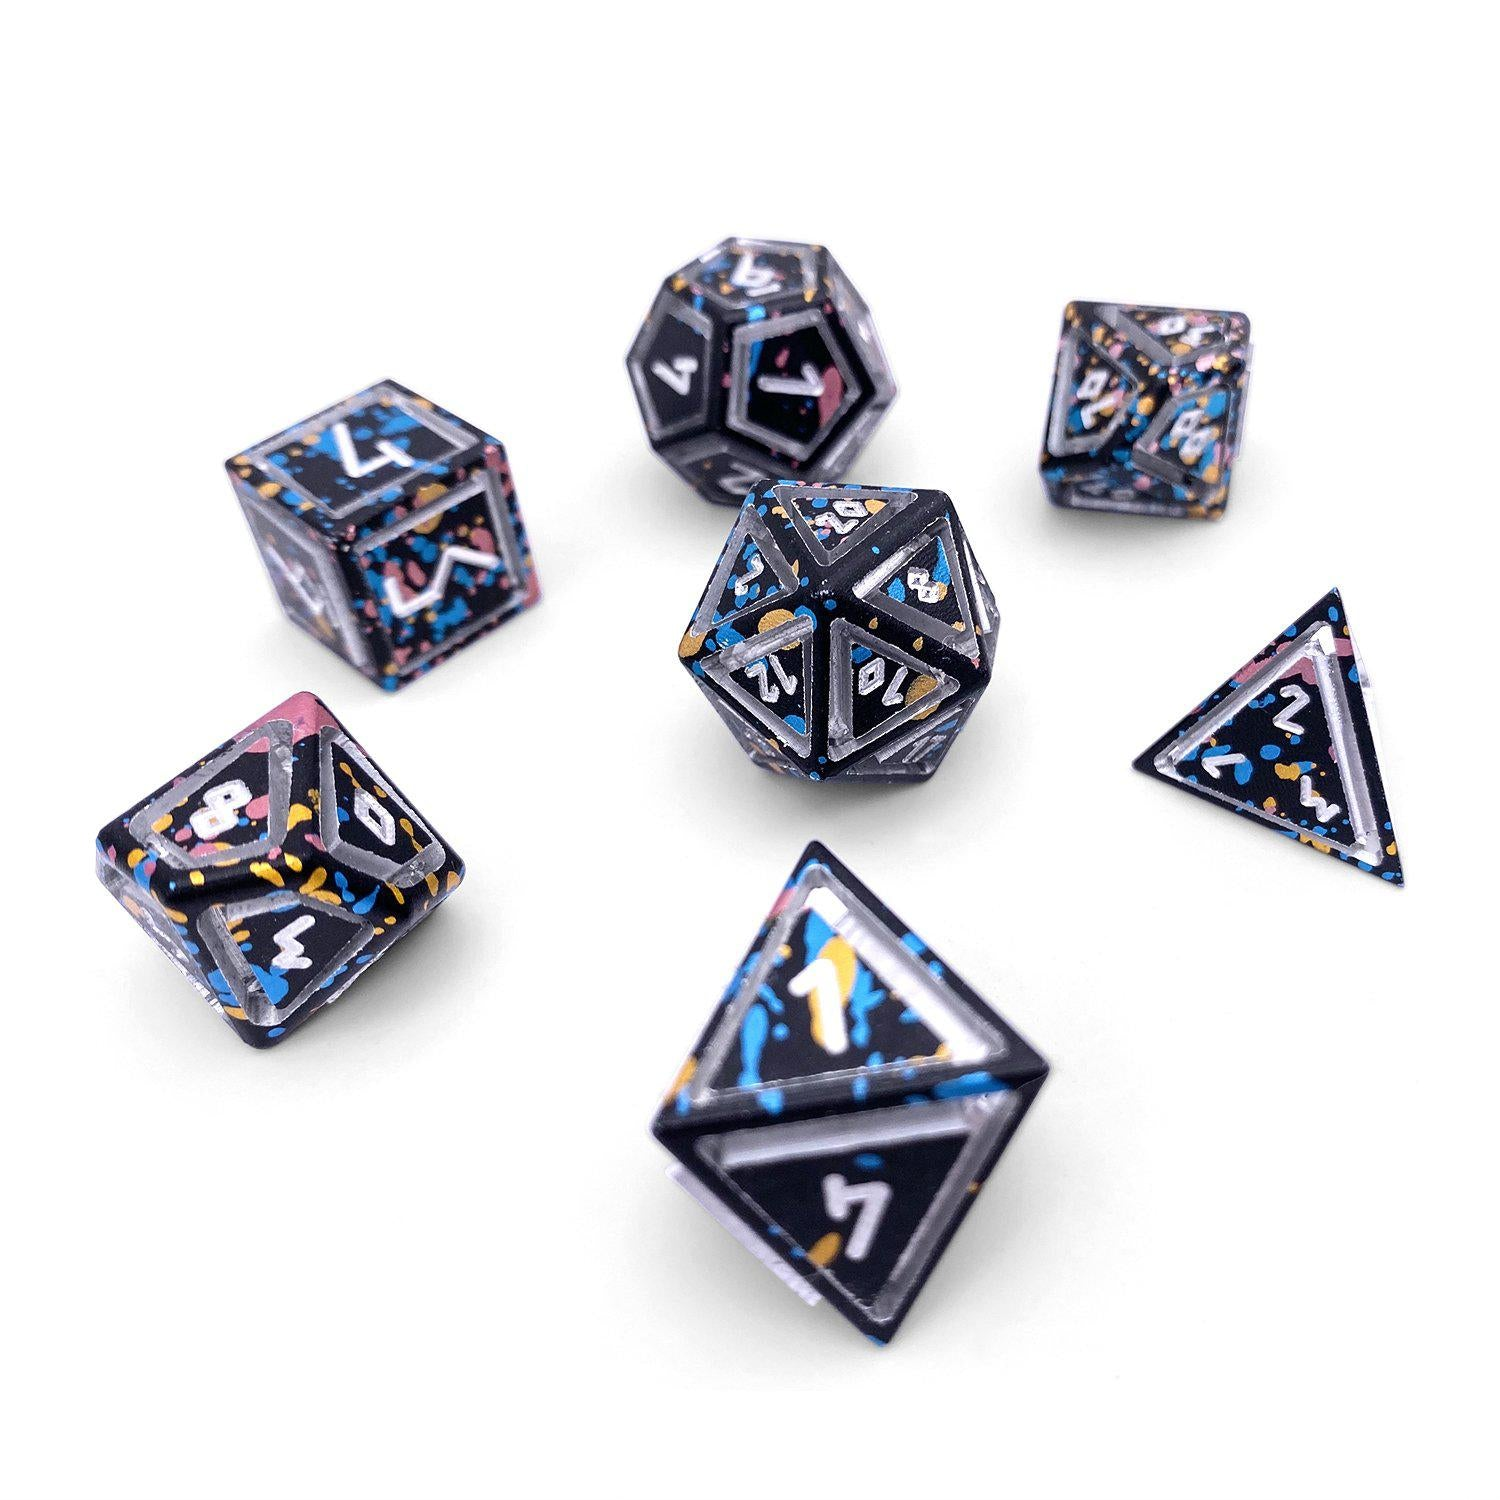 Nimbus Wondrous Precision CNC Aluminum Dice Set - That 70s Die